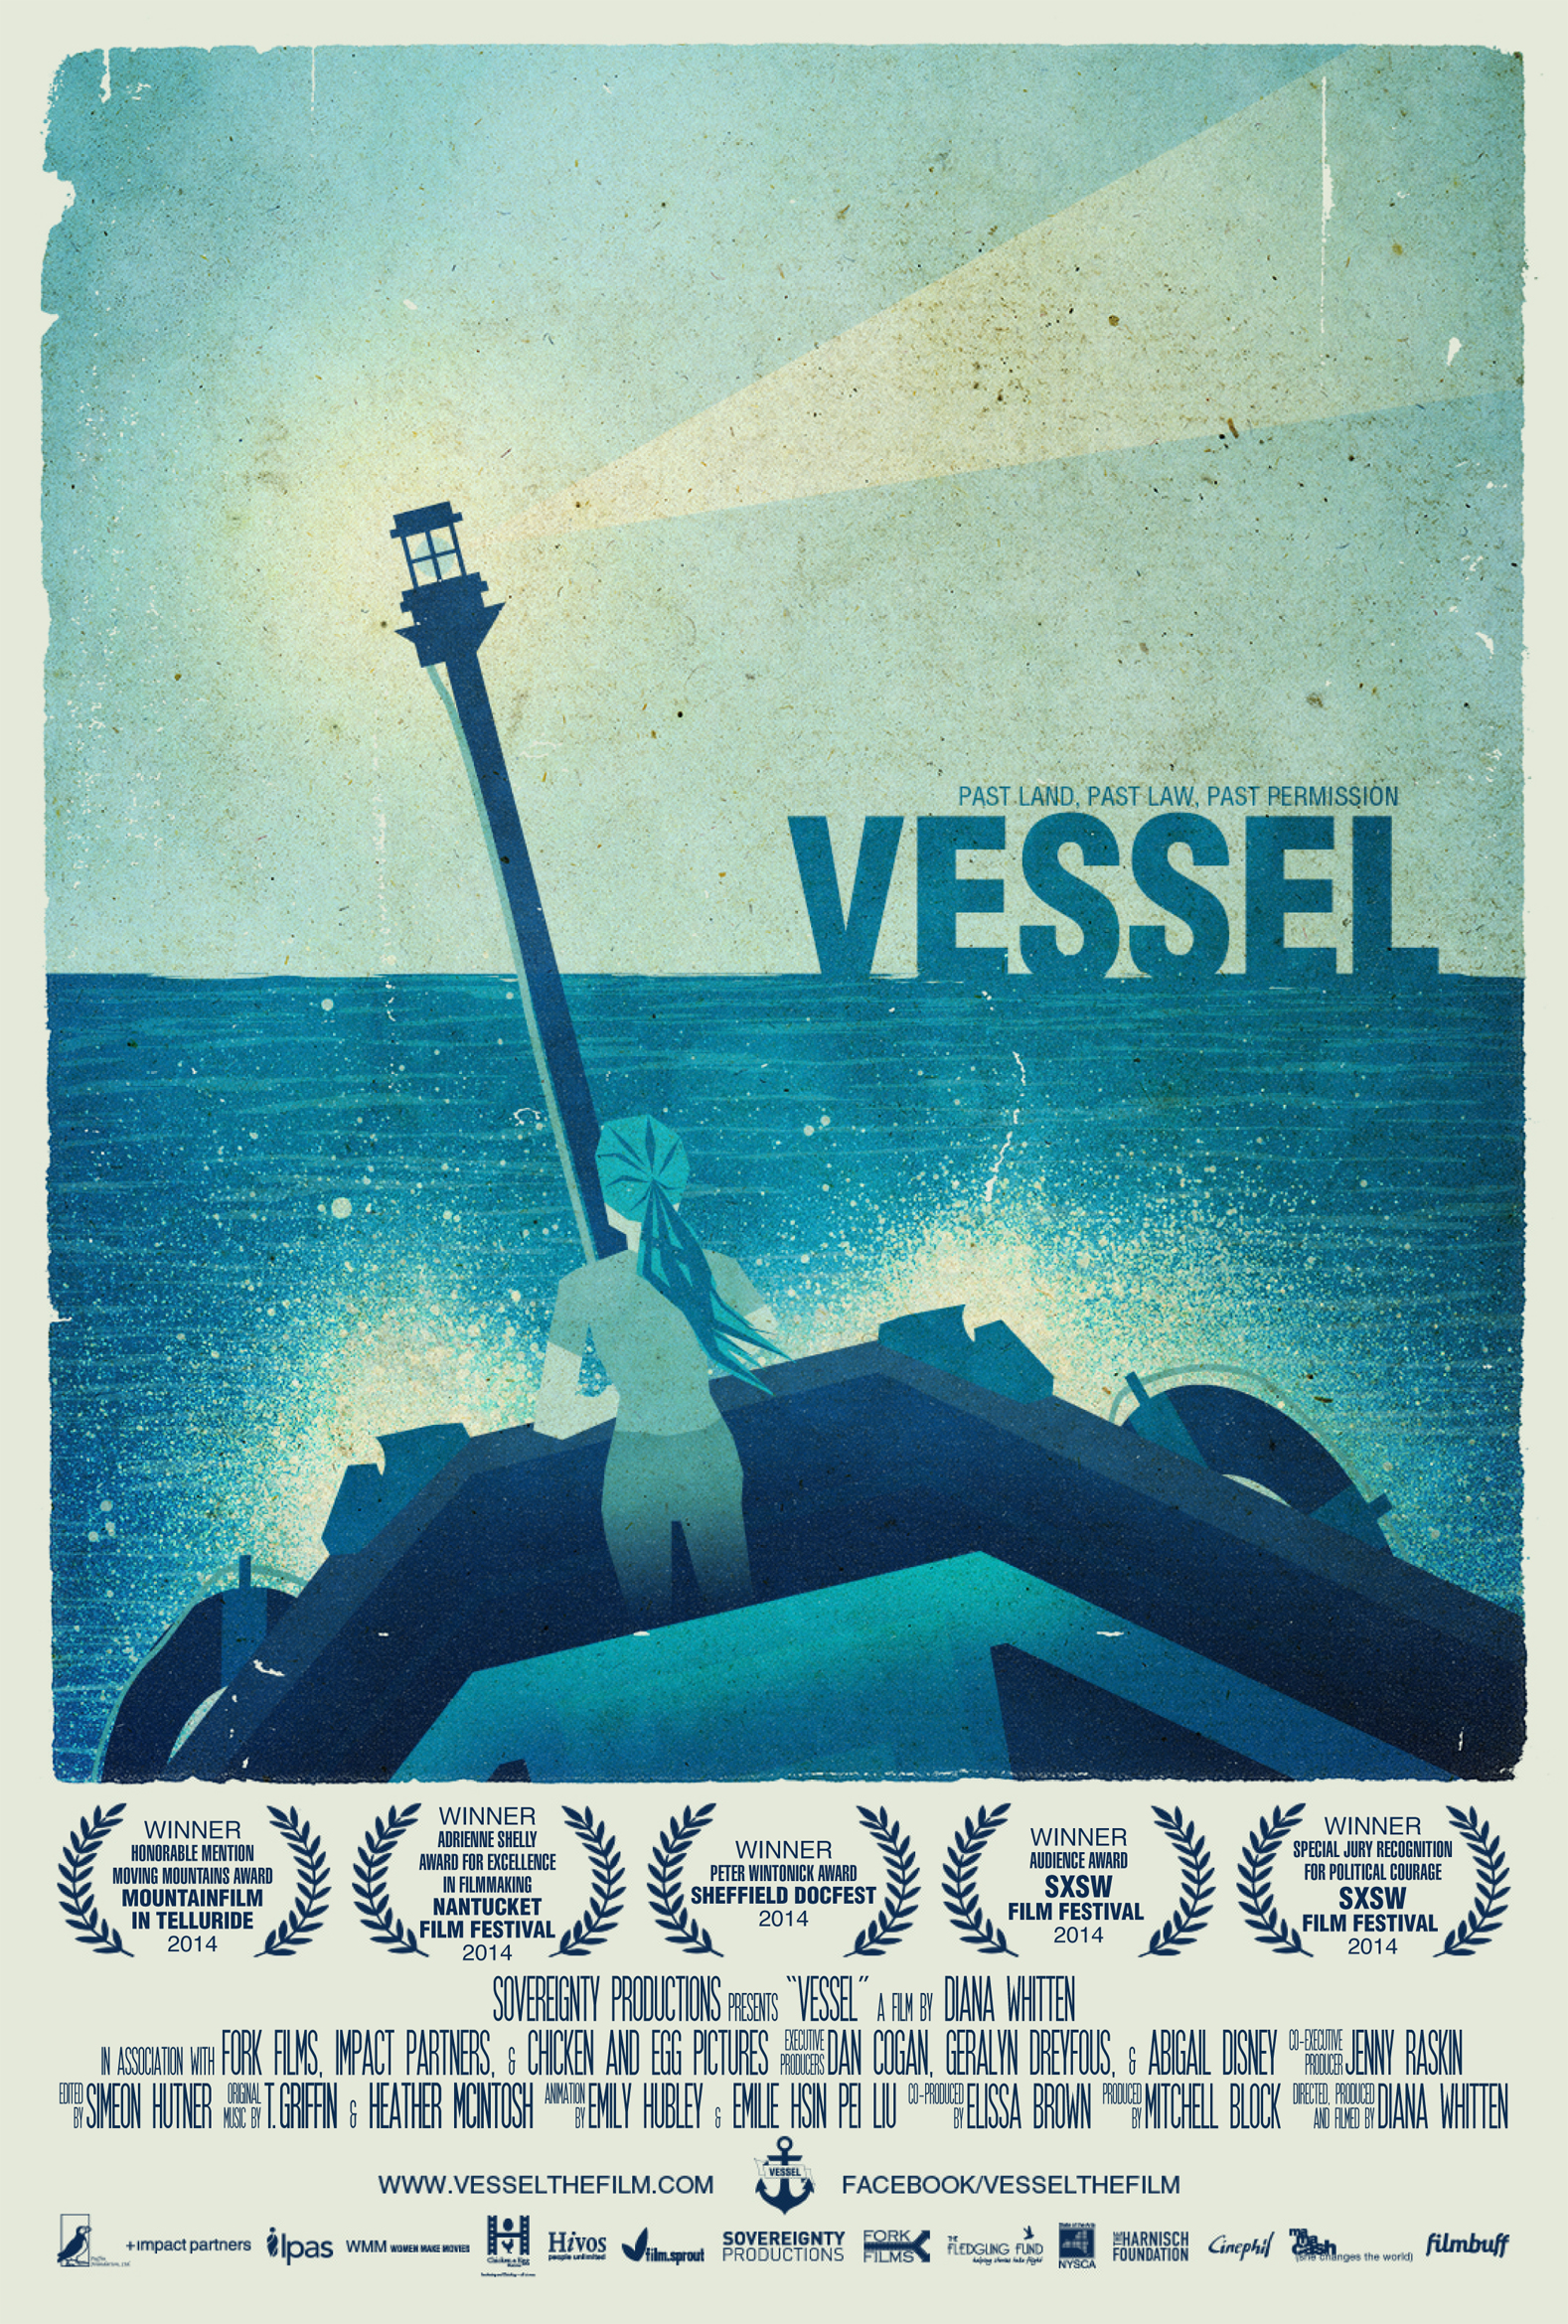 https://i1.wp.com/vesselthefilm.com/uploads/websites/456/1412792178.jpg